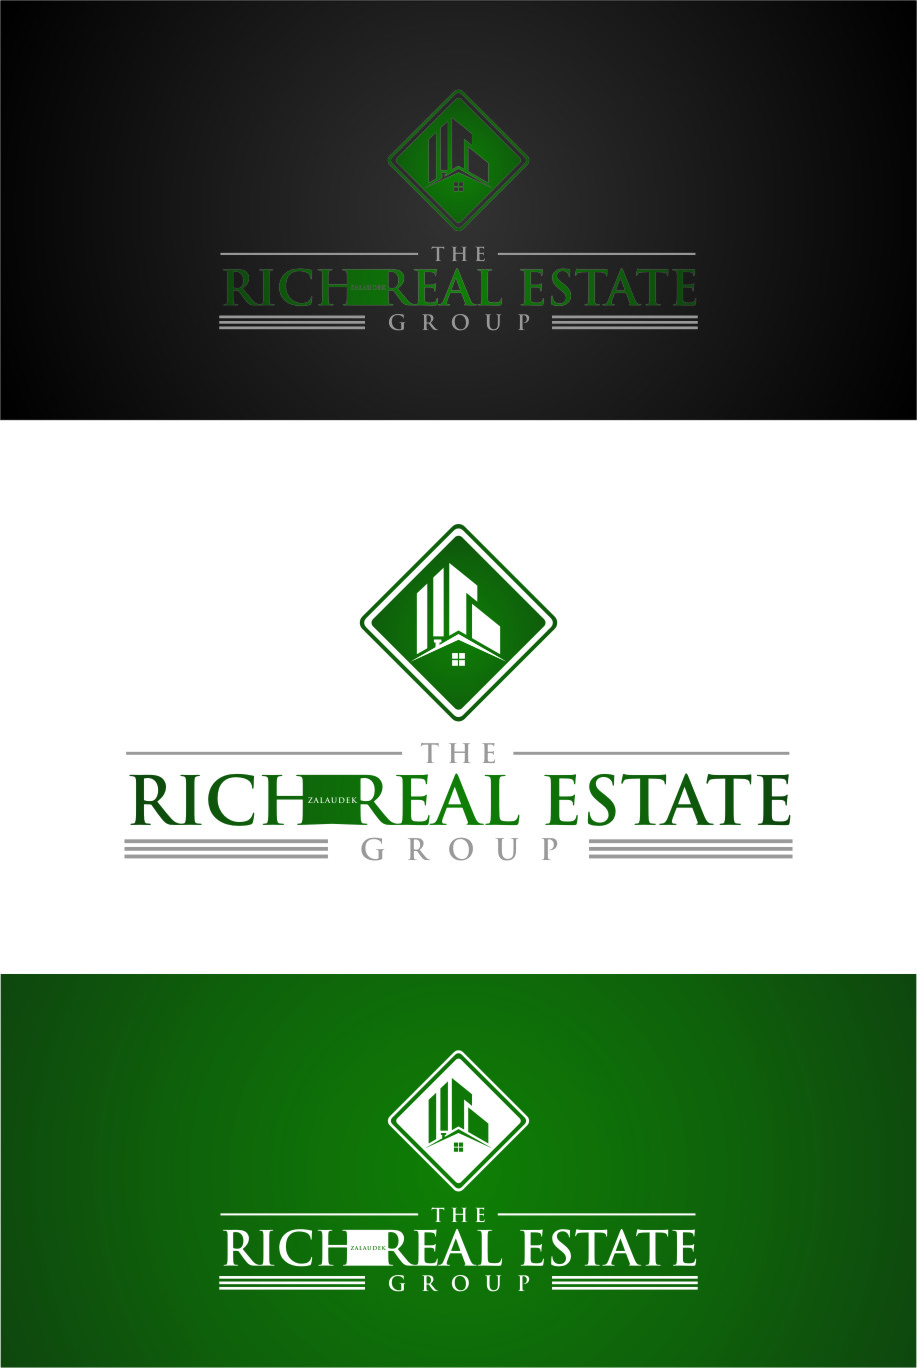 Logo Design by Ngepet_art - Entry No. 45 in the Logo Design Contest The Rich Z. Real Estate Group Logo Design.